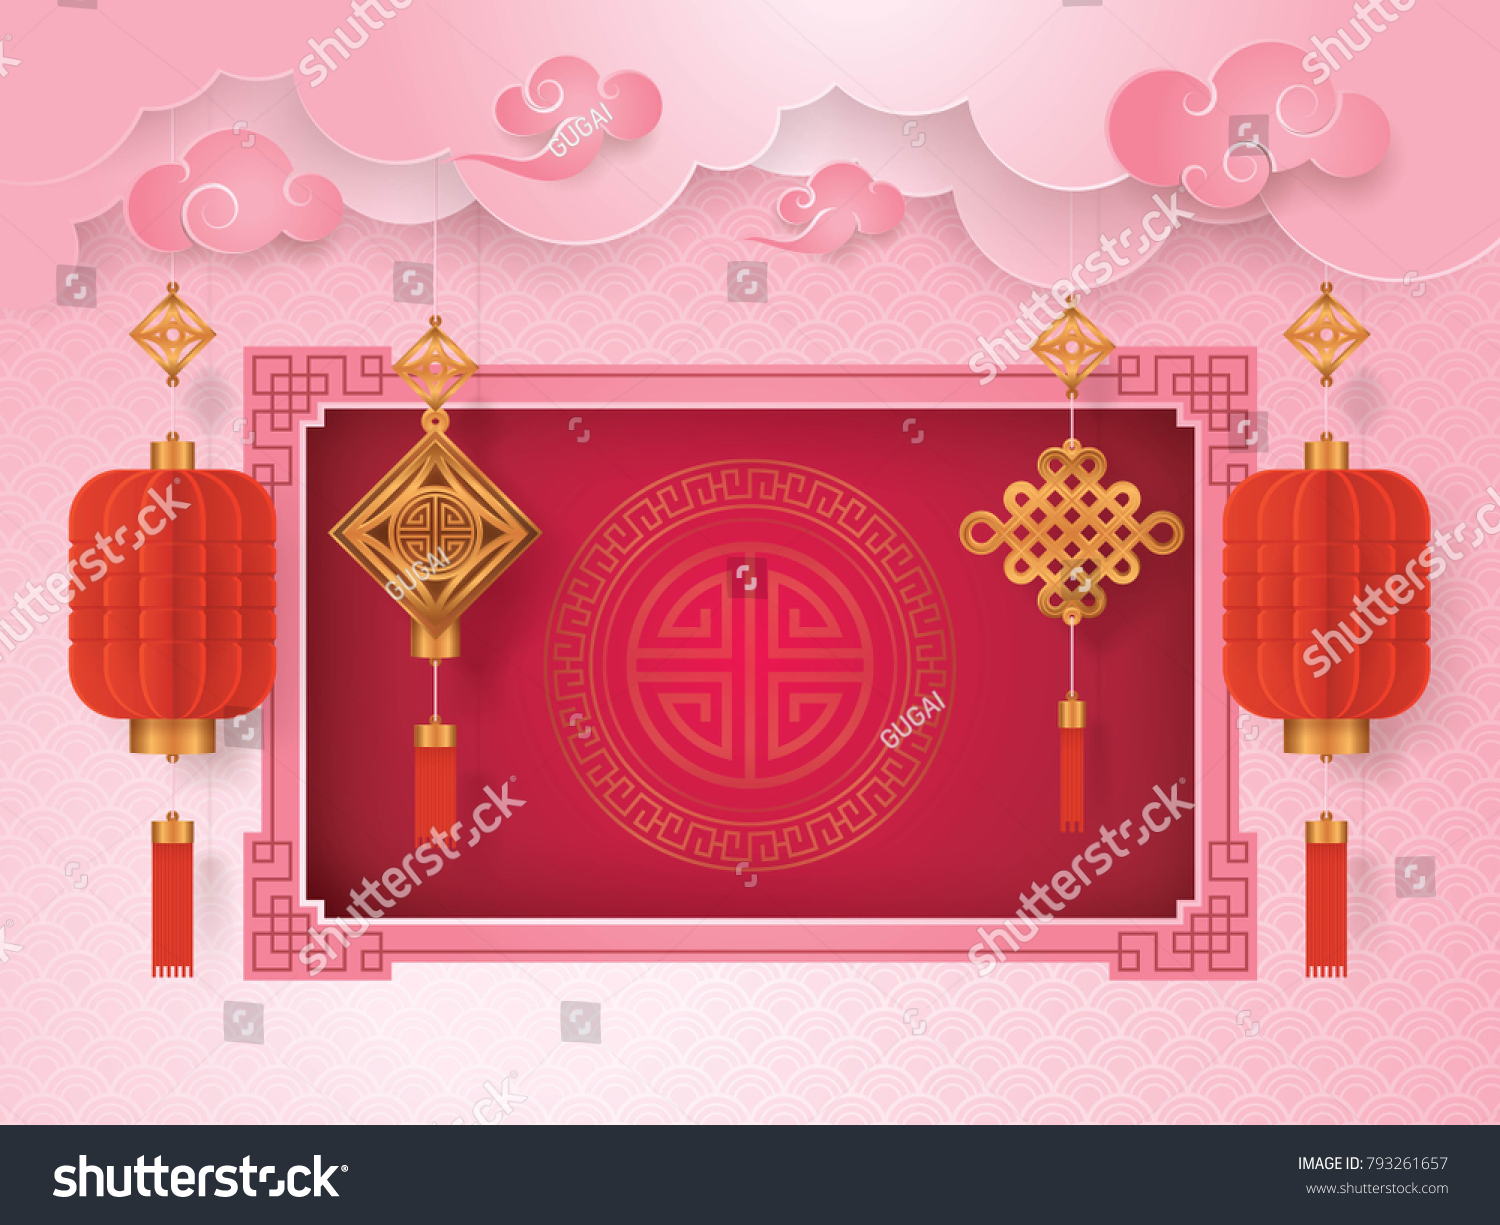 Chinese New Year Greeting Card with Frame border Asian Art Style, Cloud and  Hanging Red